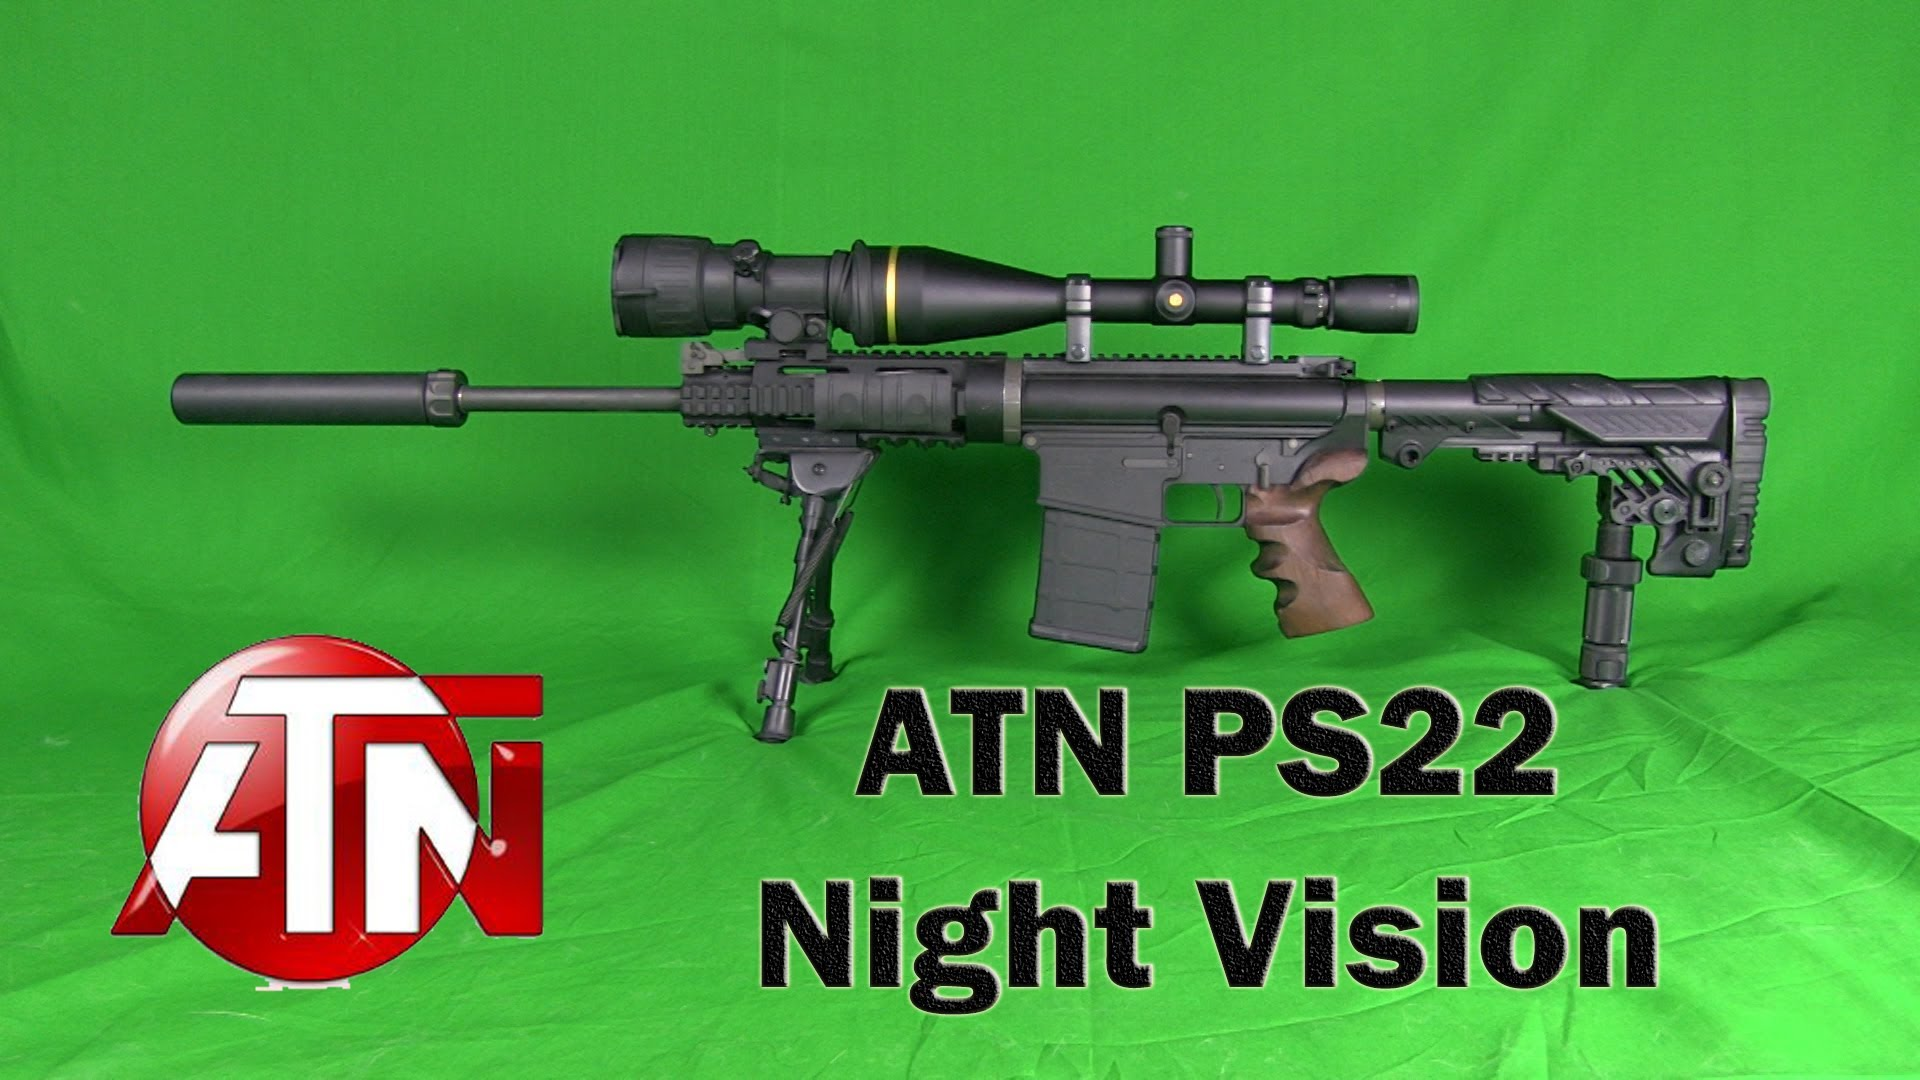 ATN PS22 Night Vision Scope